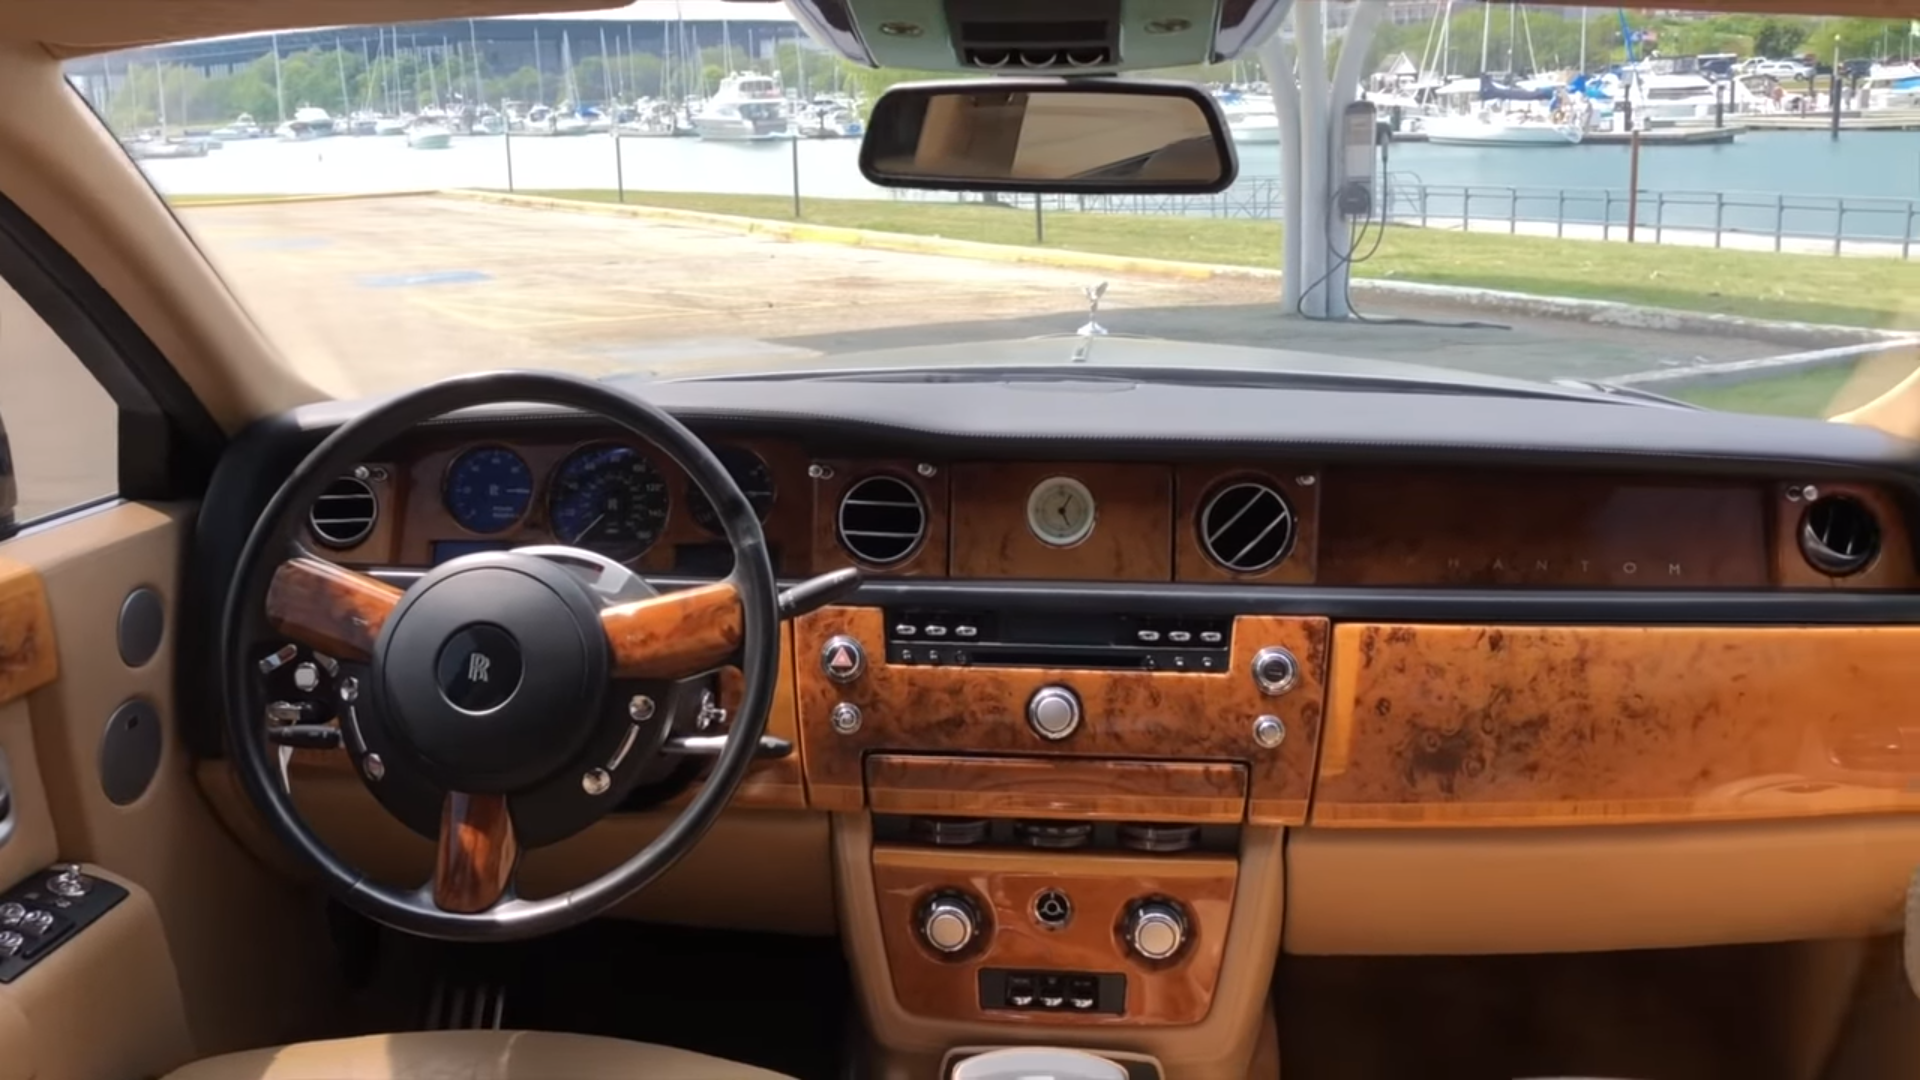 VIDEO: Another Update To The Cheapest Rolls Royce Phantom